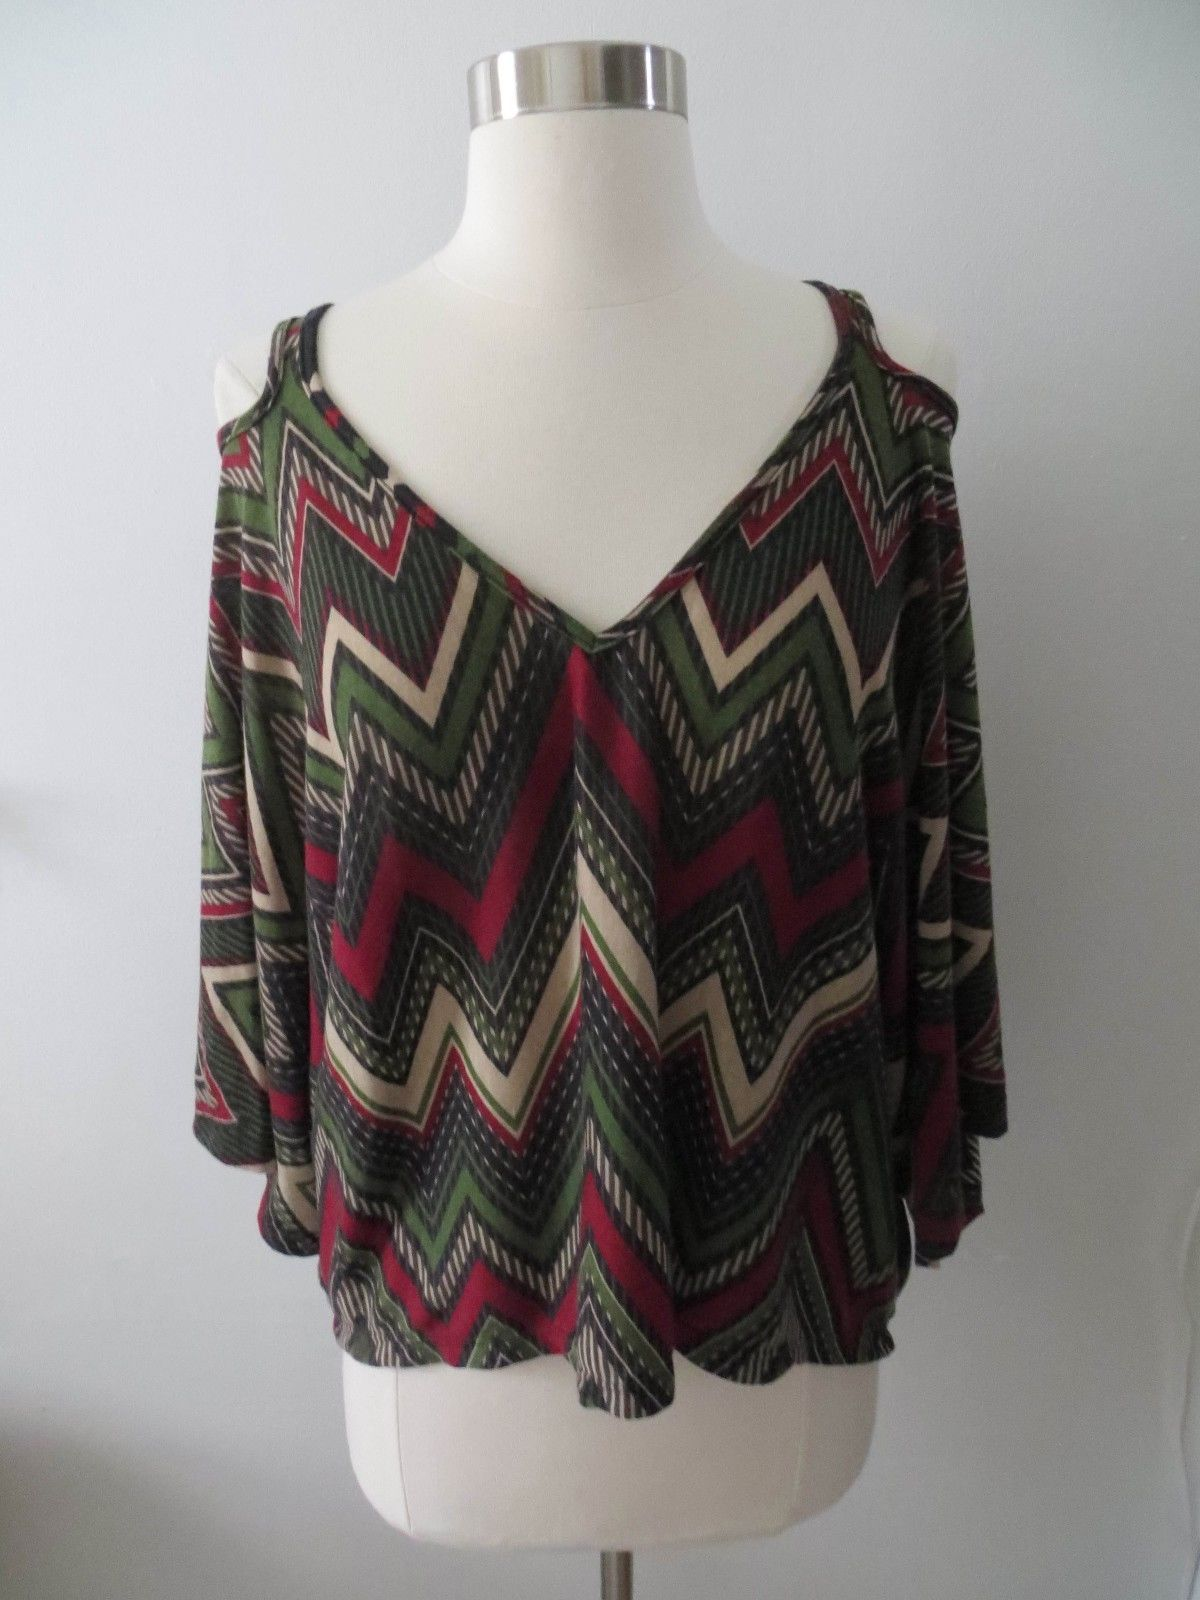 Lovemarks sz SMALL green red colorful zig zag loose-fit v-neck blouse top shirt